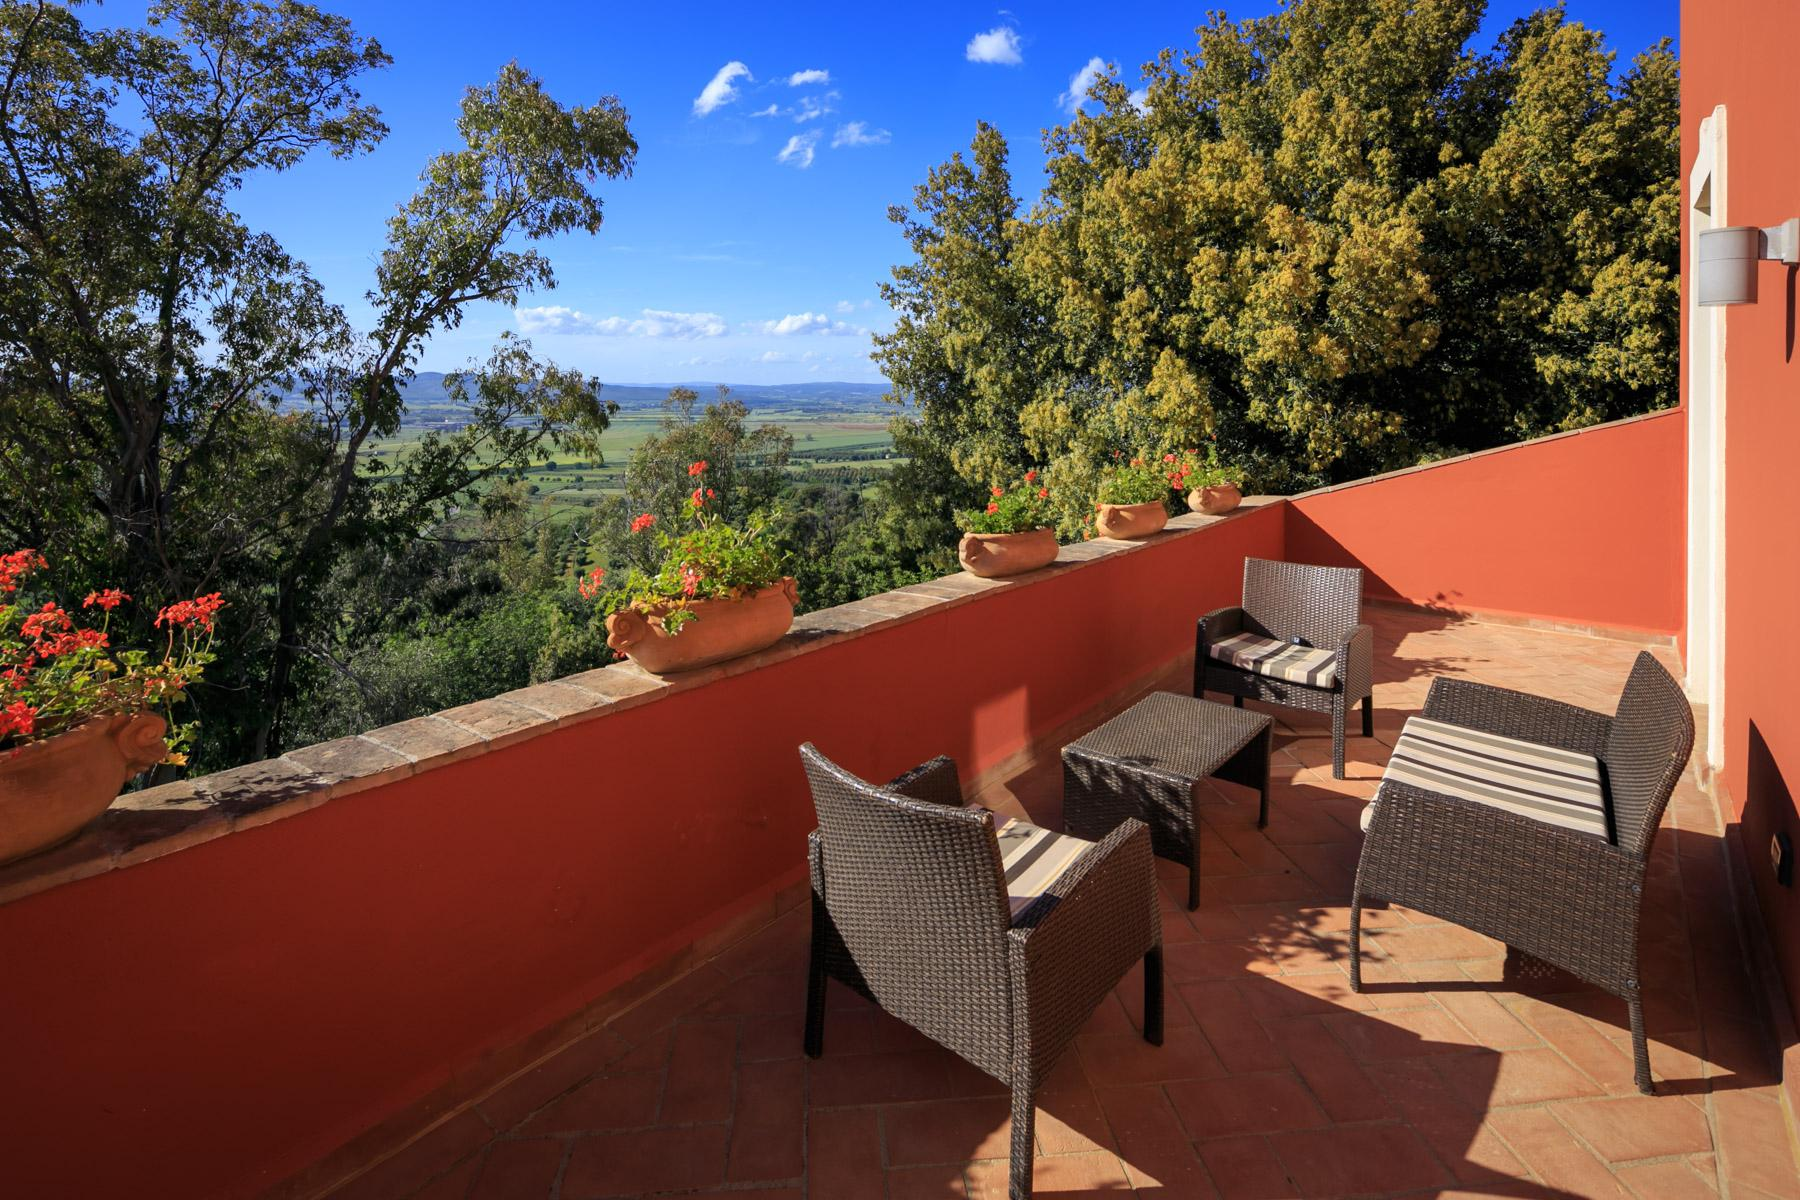 Historic Villa with stunning views over the Gulf of Scarlino - 30